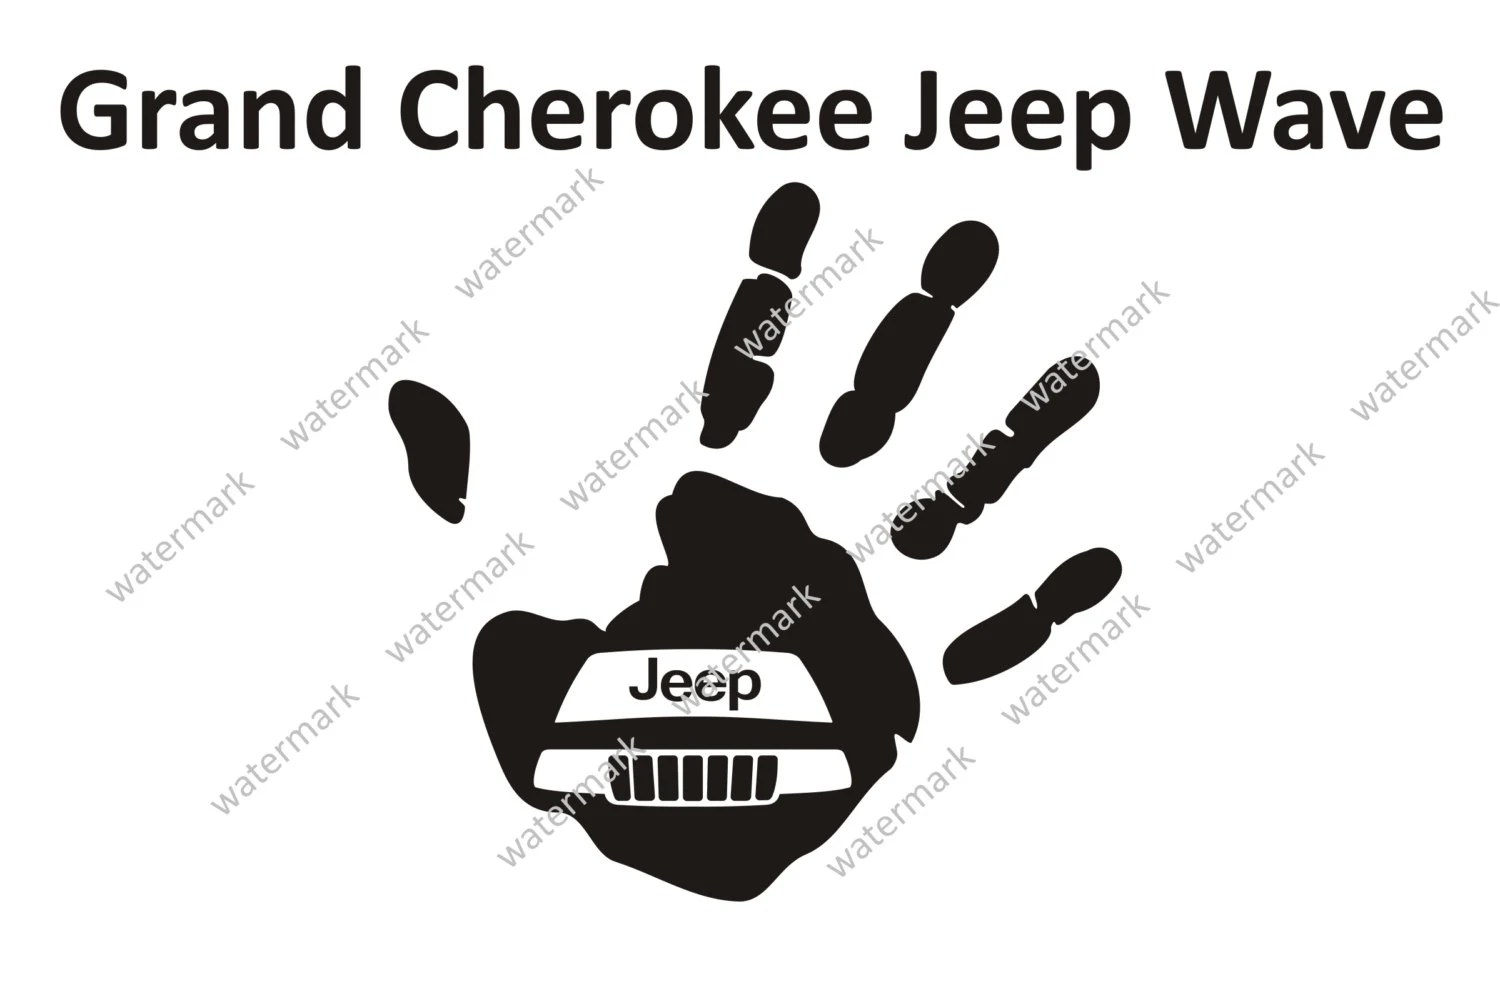 Decals for jeep grand cherokee